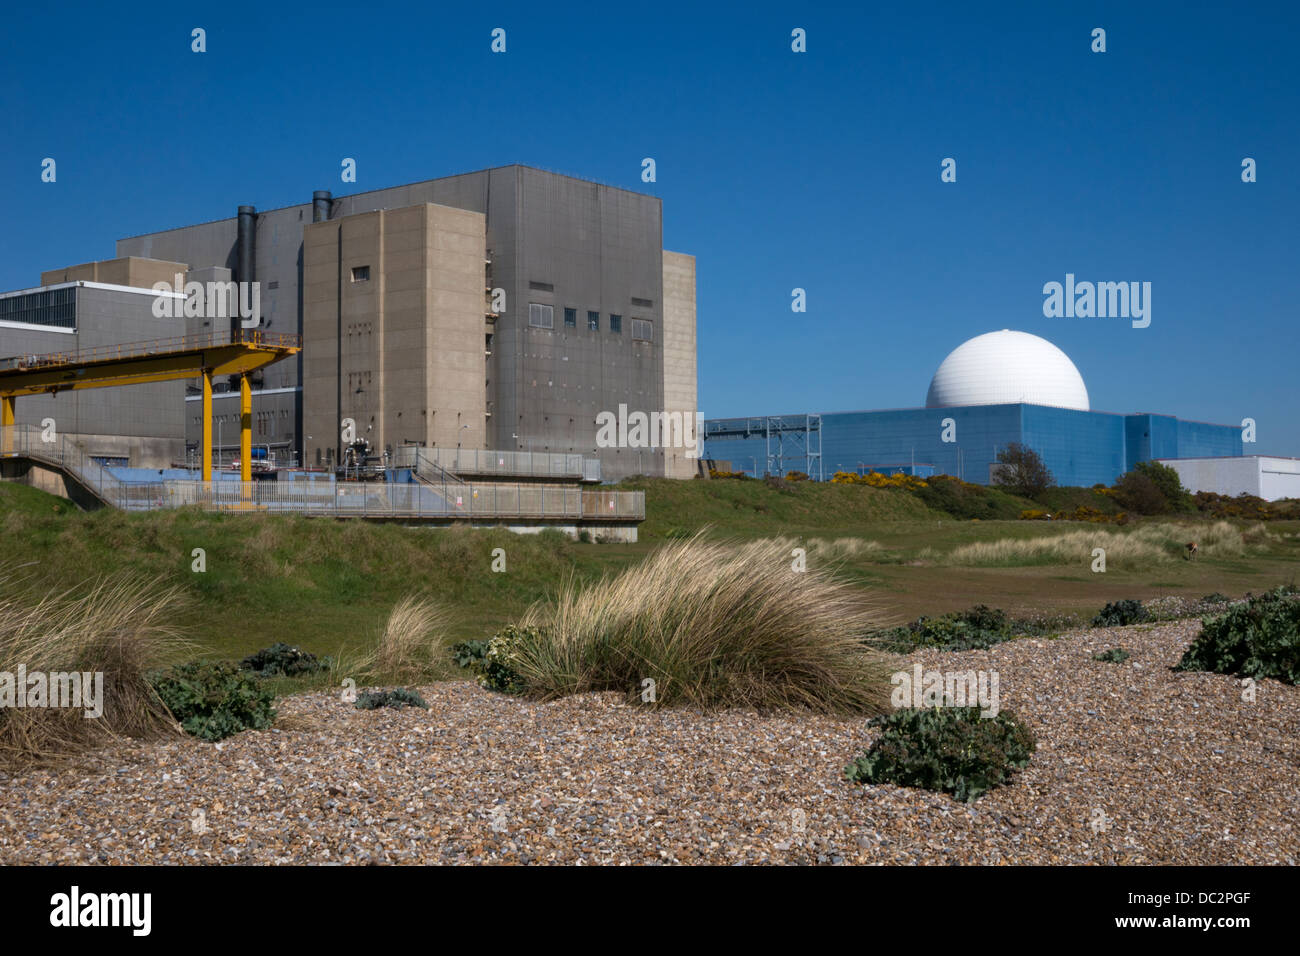 Sizewell nuclear power station, Suffolk, East Anglia, England - Stock Image